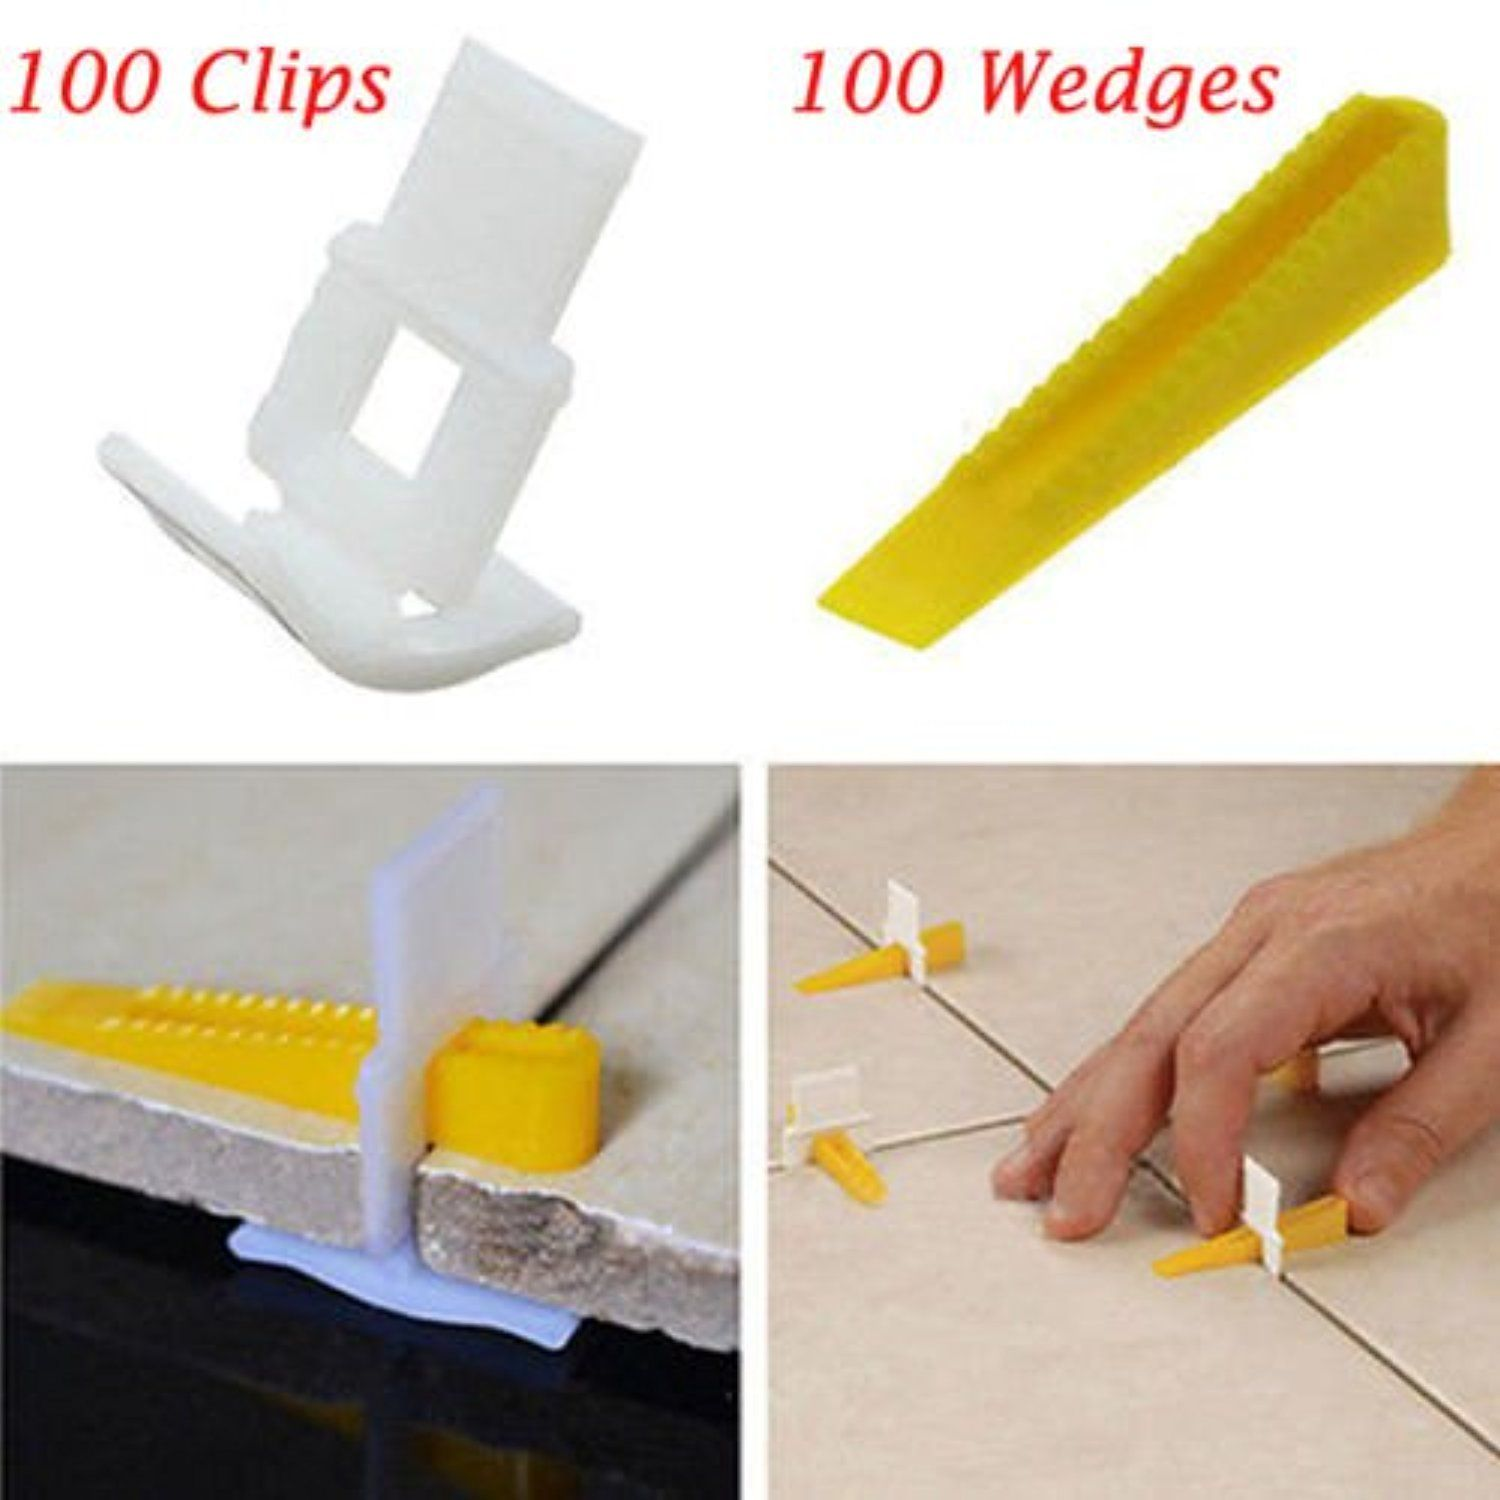 Whosee 100clips 100 Wedges 200 Tiles Leveler Spacers Lippage Tile Leveling System Diy Awesome Products Selected By Tile Leveling System Tiles Tile Spacers